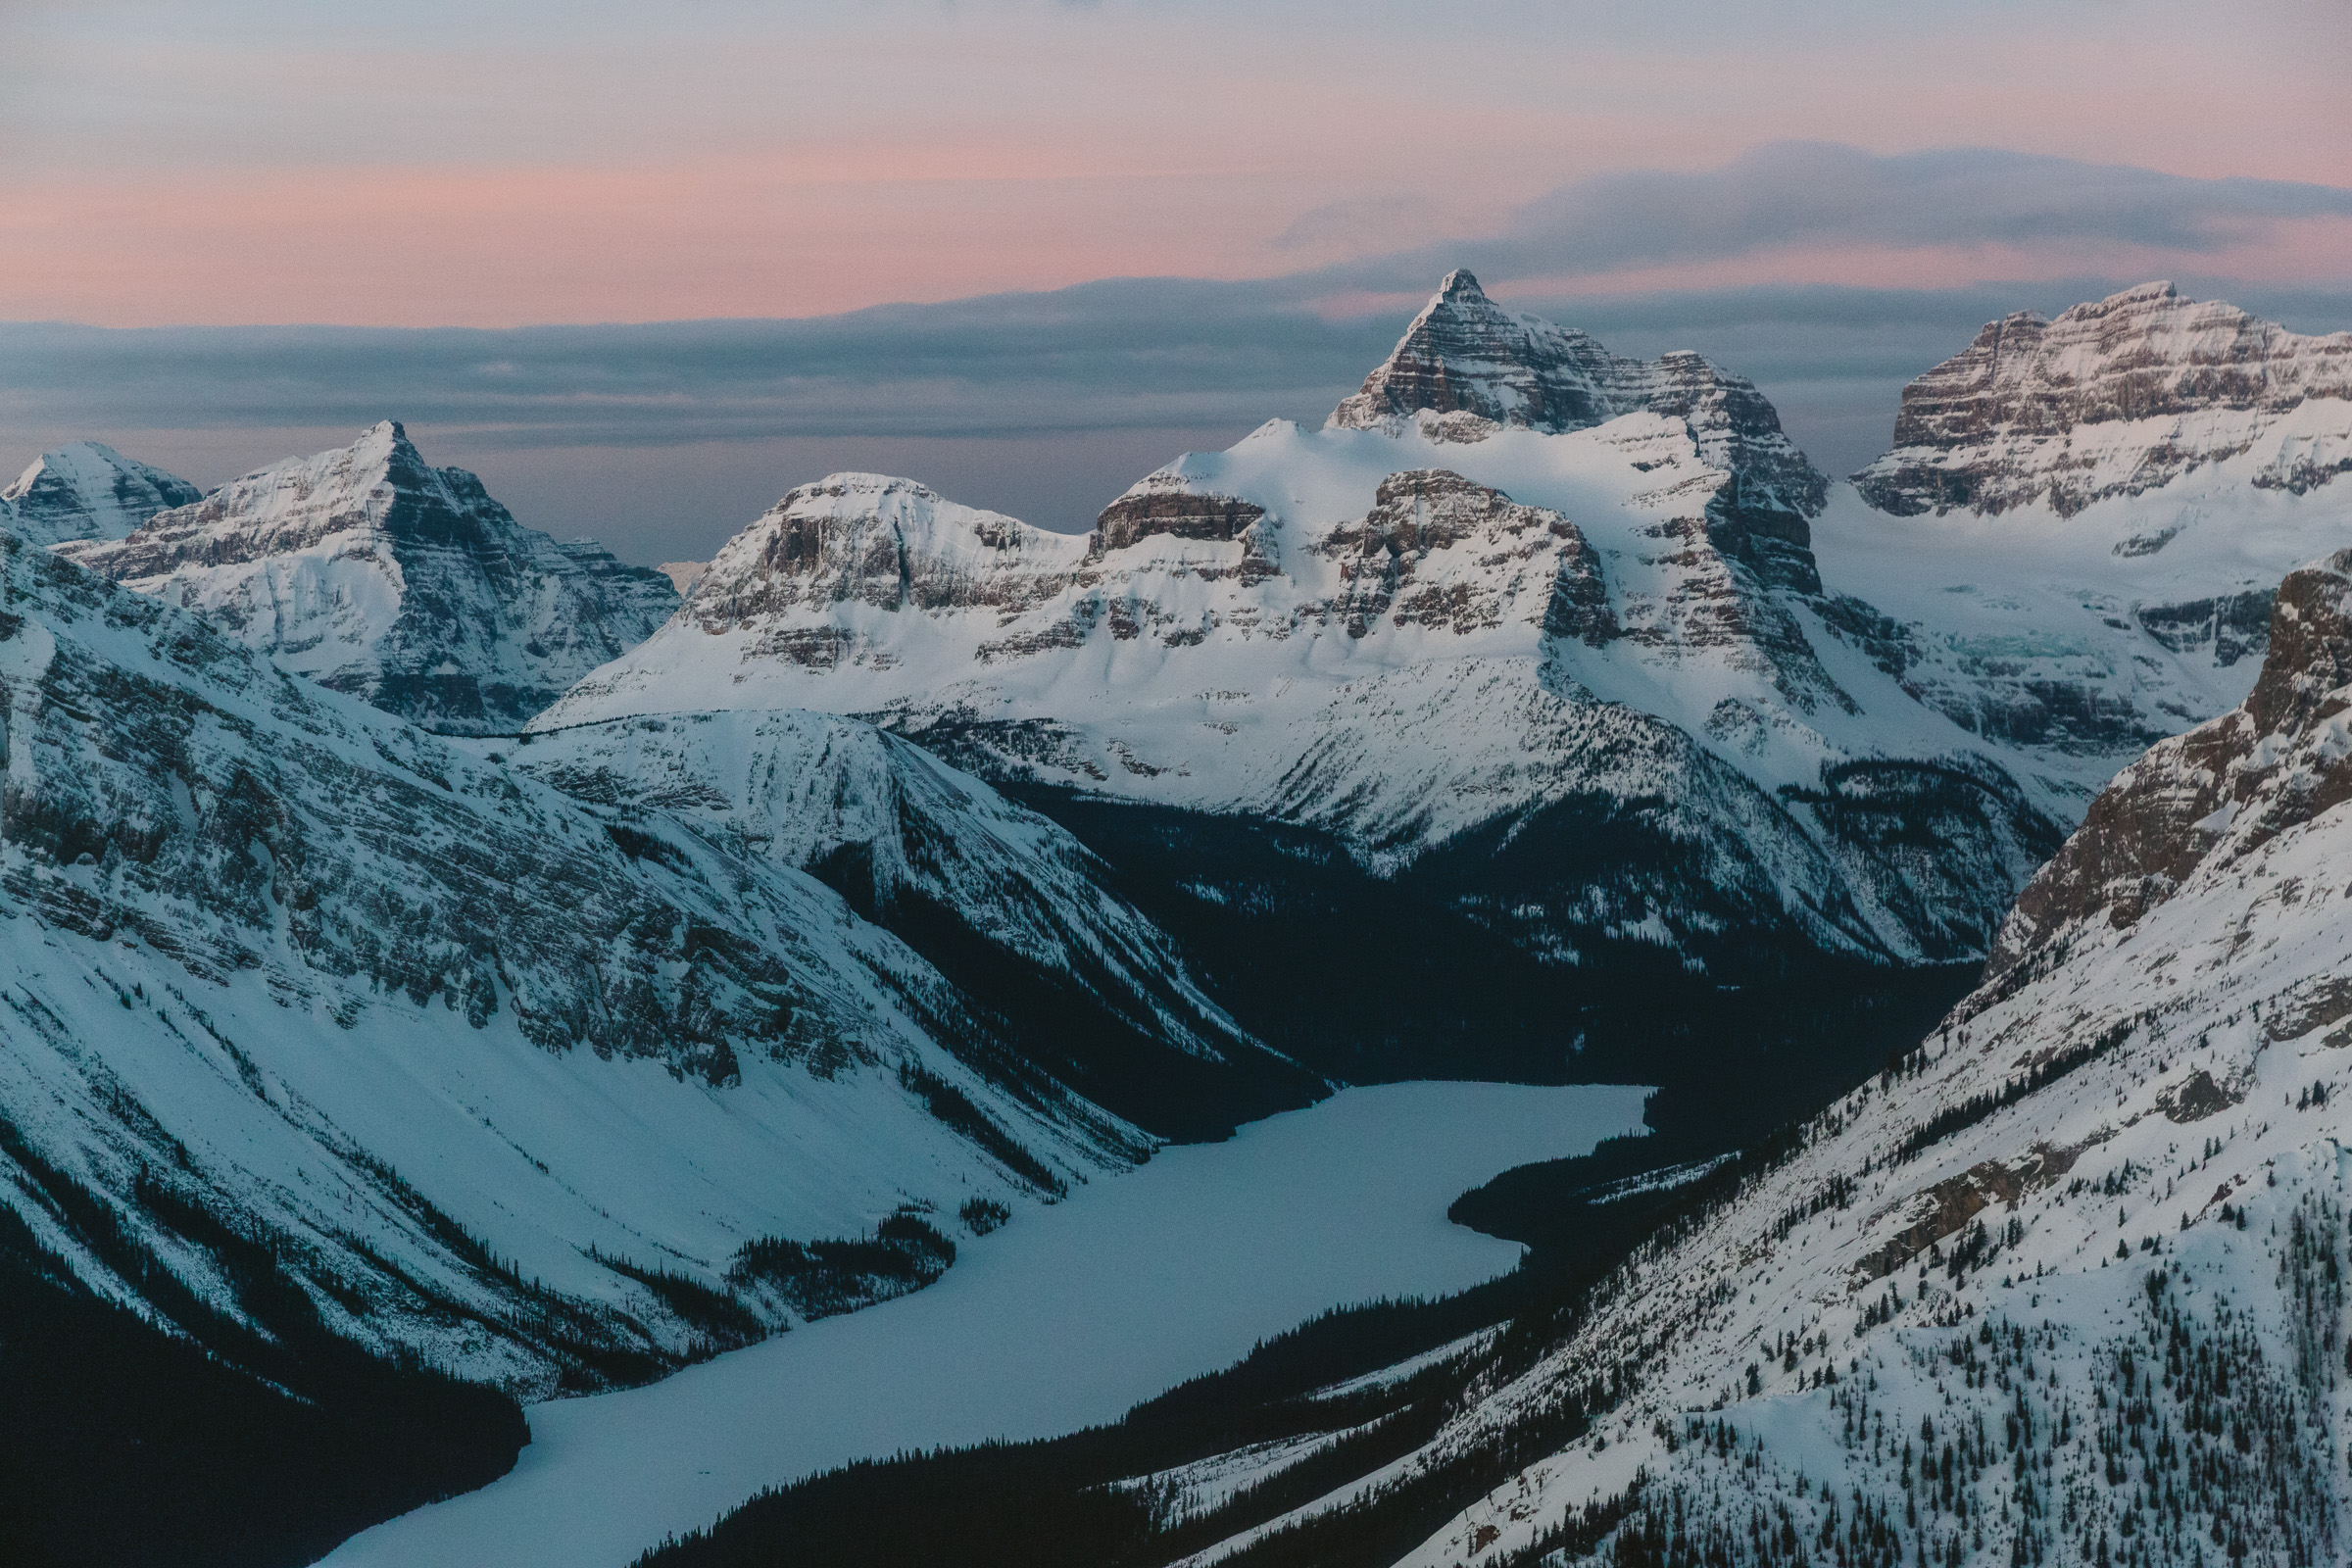 canada-alberta-lifestyle-photography-mikeseehagel-02